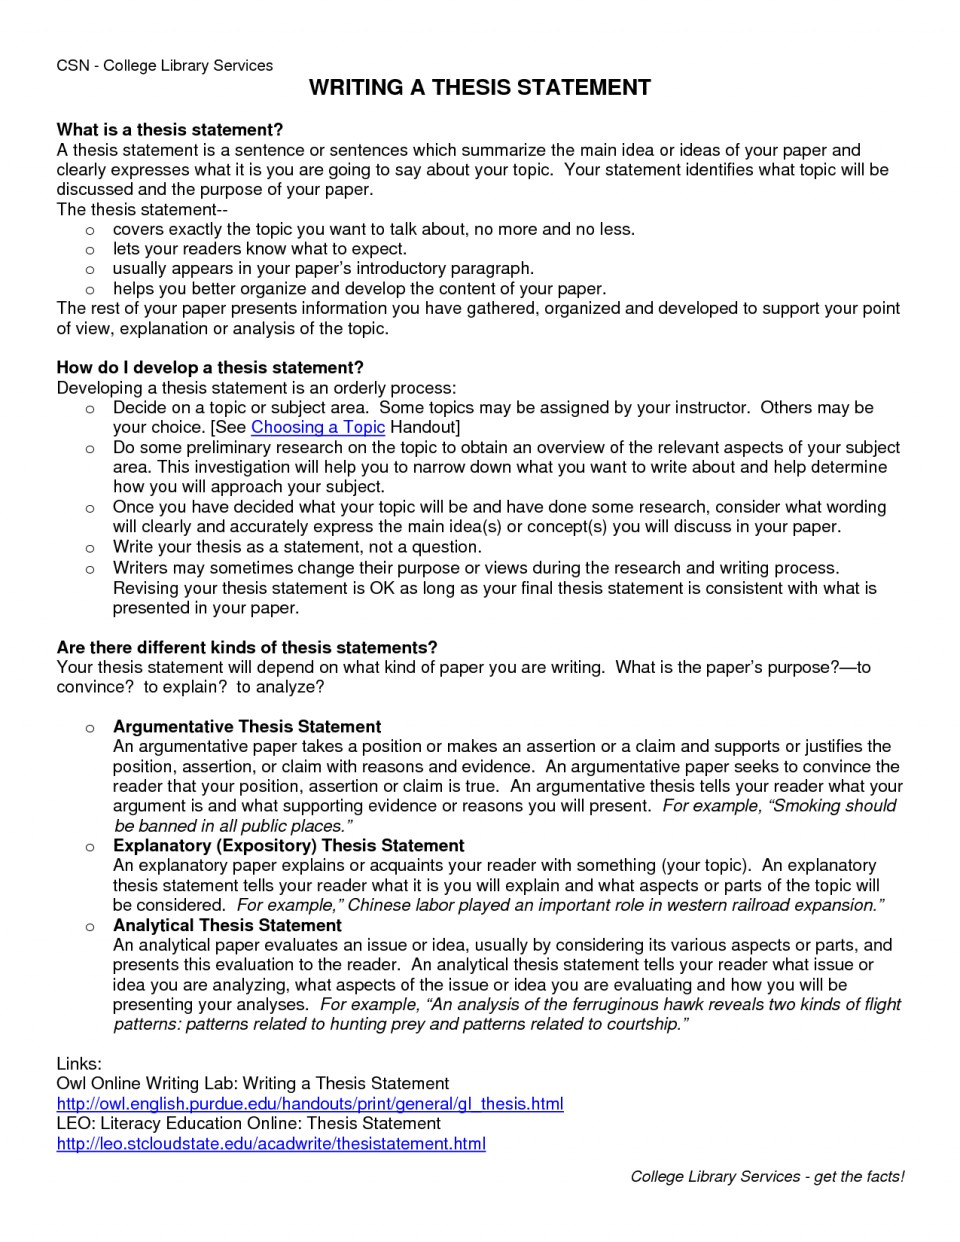 006 Types Of Thesis Statements Template Ociuayr1 Research Paper Statement Magnificent Examples Argumentative Topic Sentence And 960